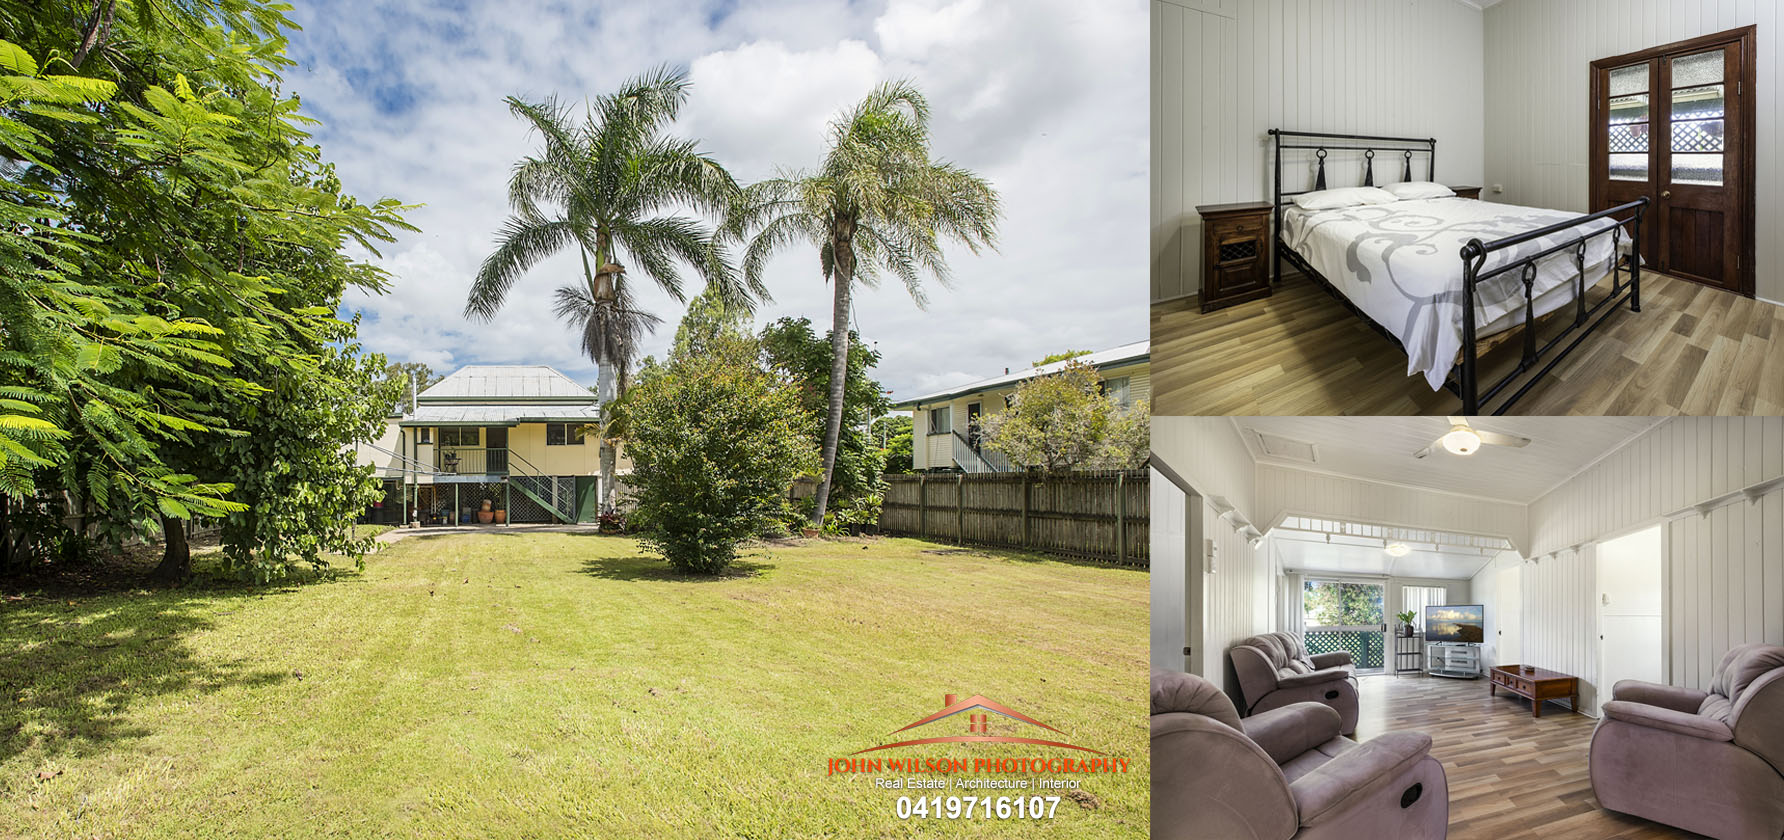 Granville Home sold online via private sale and listed for under $500!!